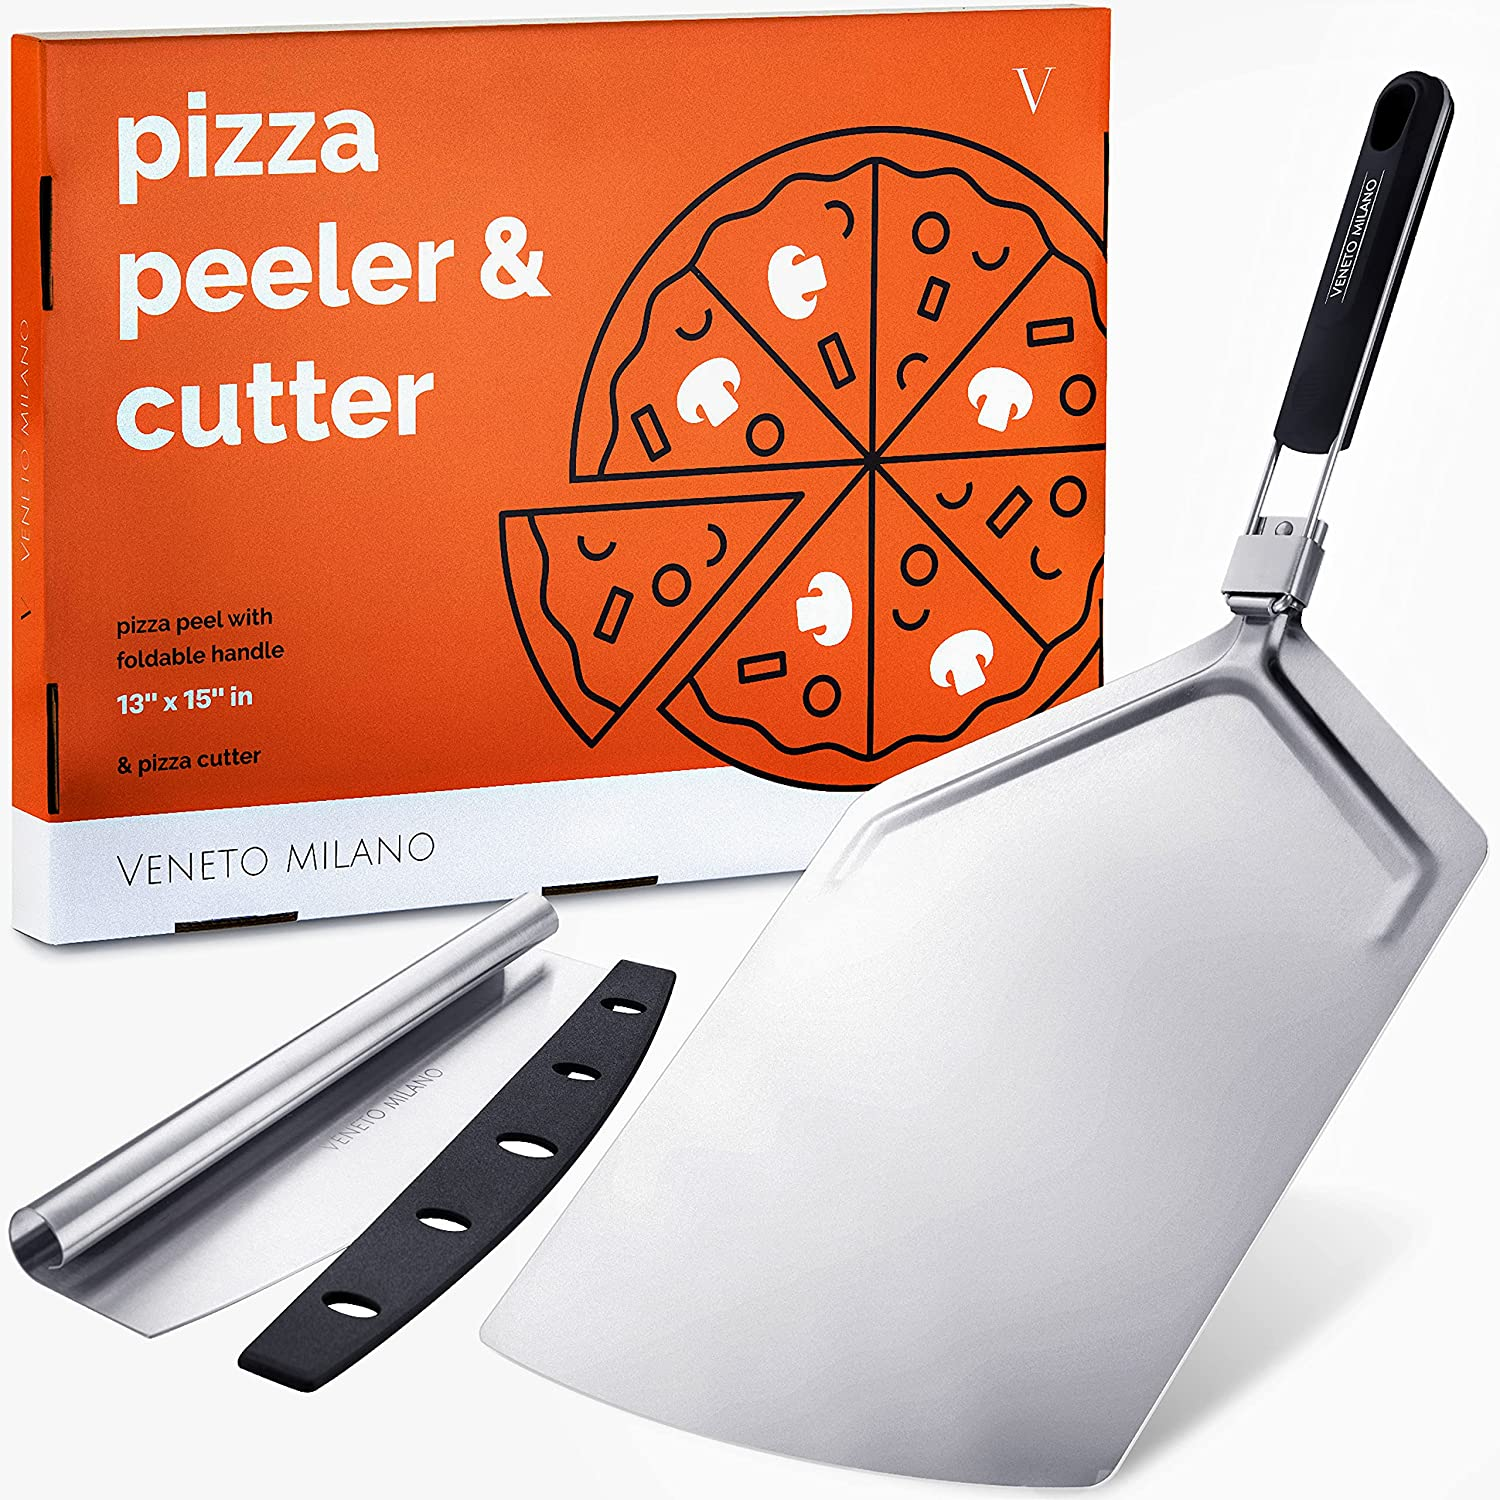 Veneto Milano Inexpensive - Extra Large Pizza Cutter P 16 New product type Inch Peel